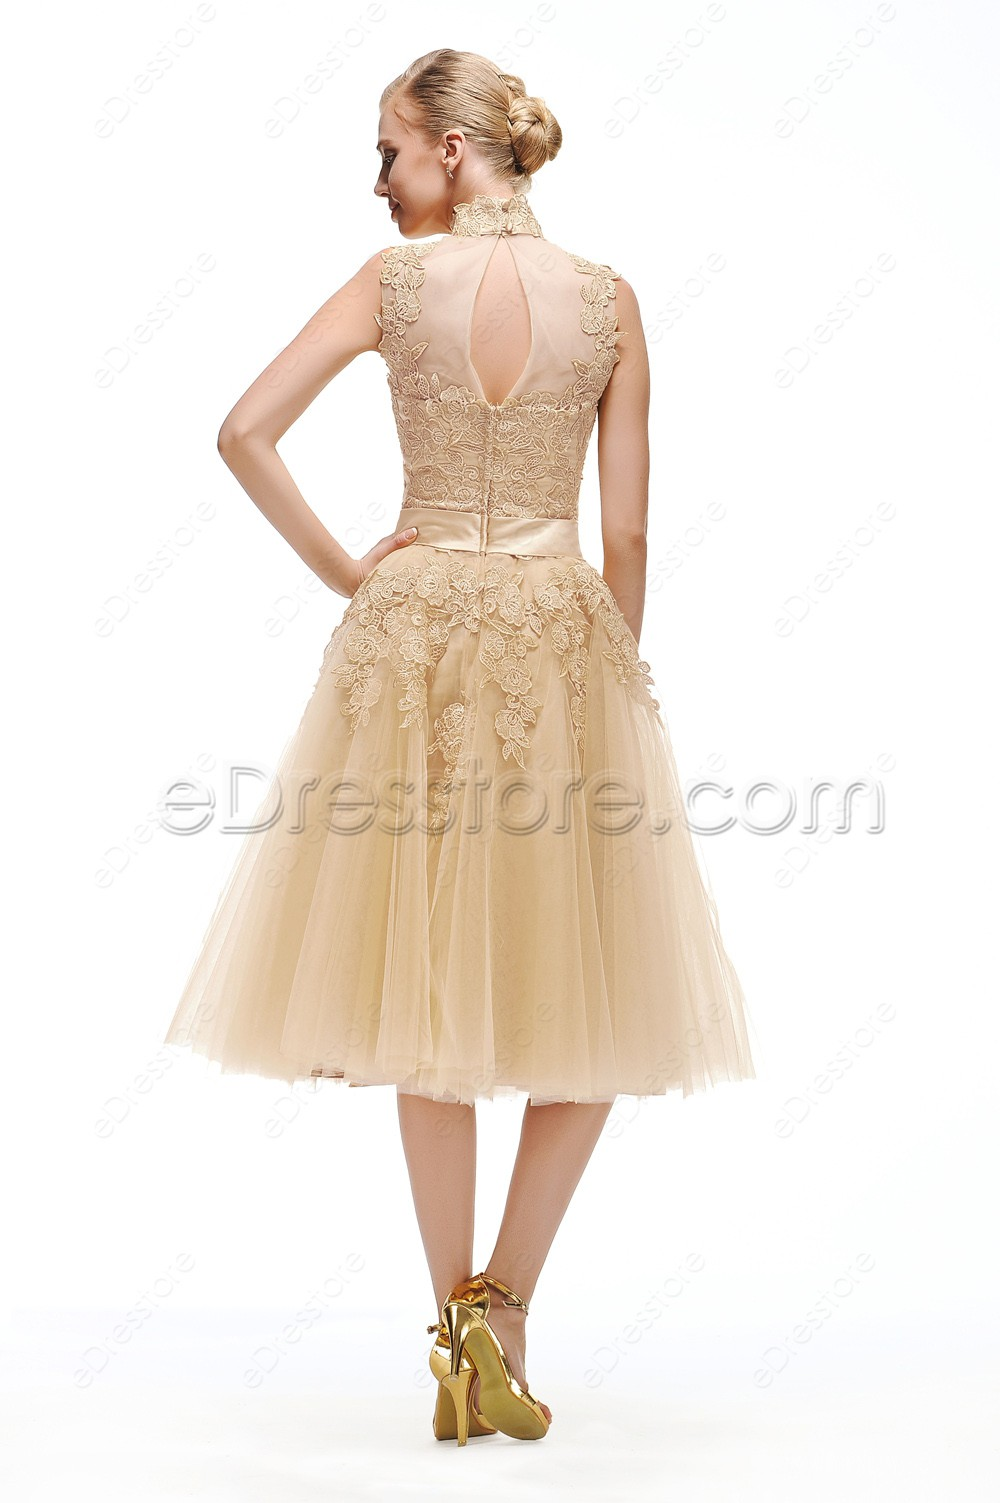 Champagne vintage bridesmaid dresses tea length for Champagne tea length wedding dresses